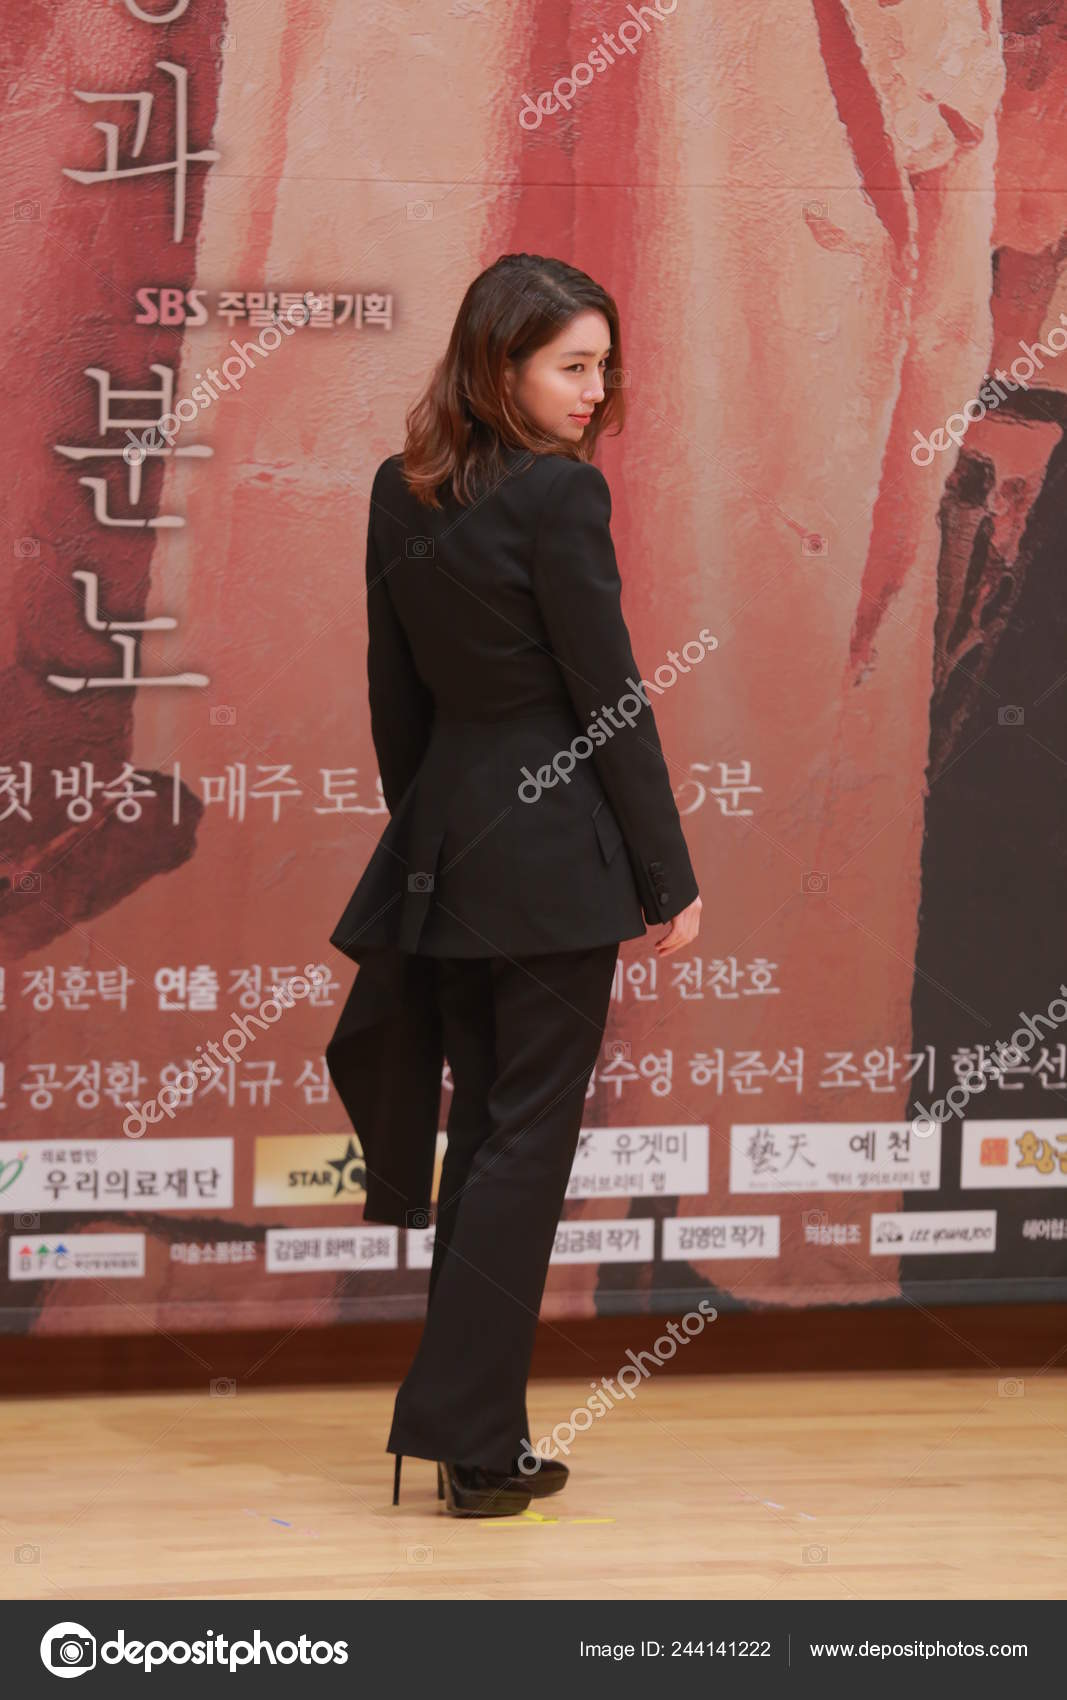 South Korean Actress Lee Min Jung Attends Press Conference